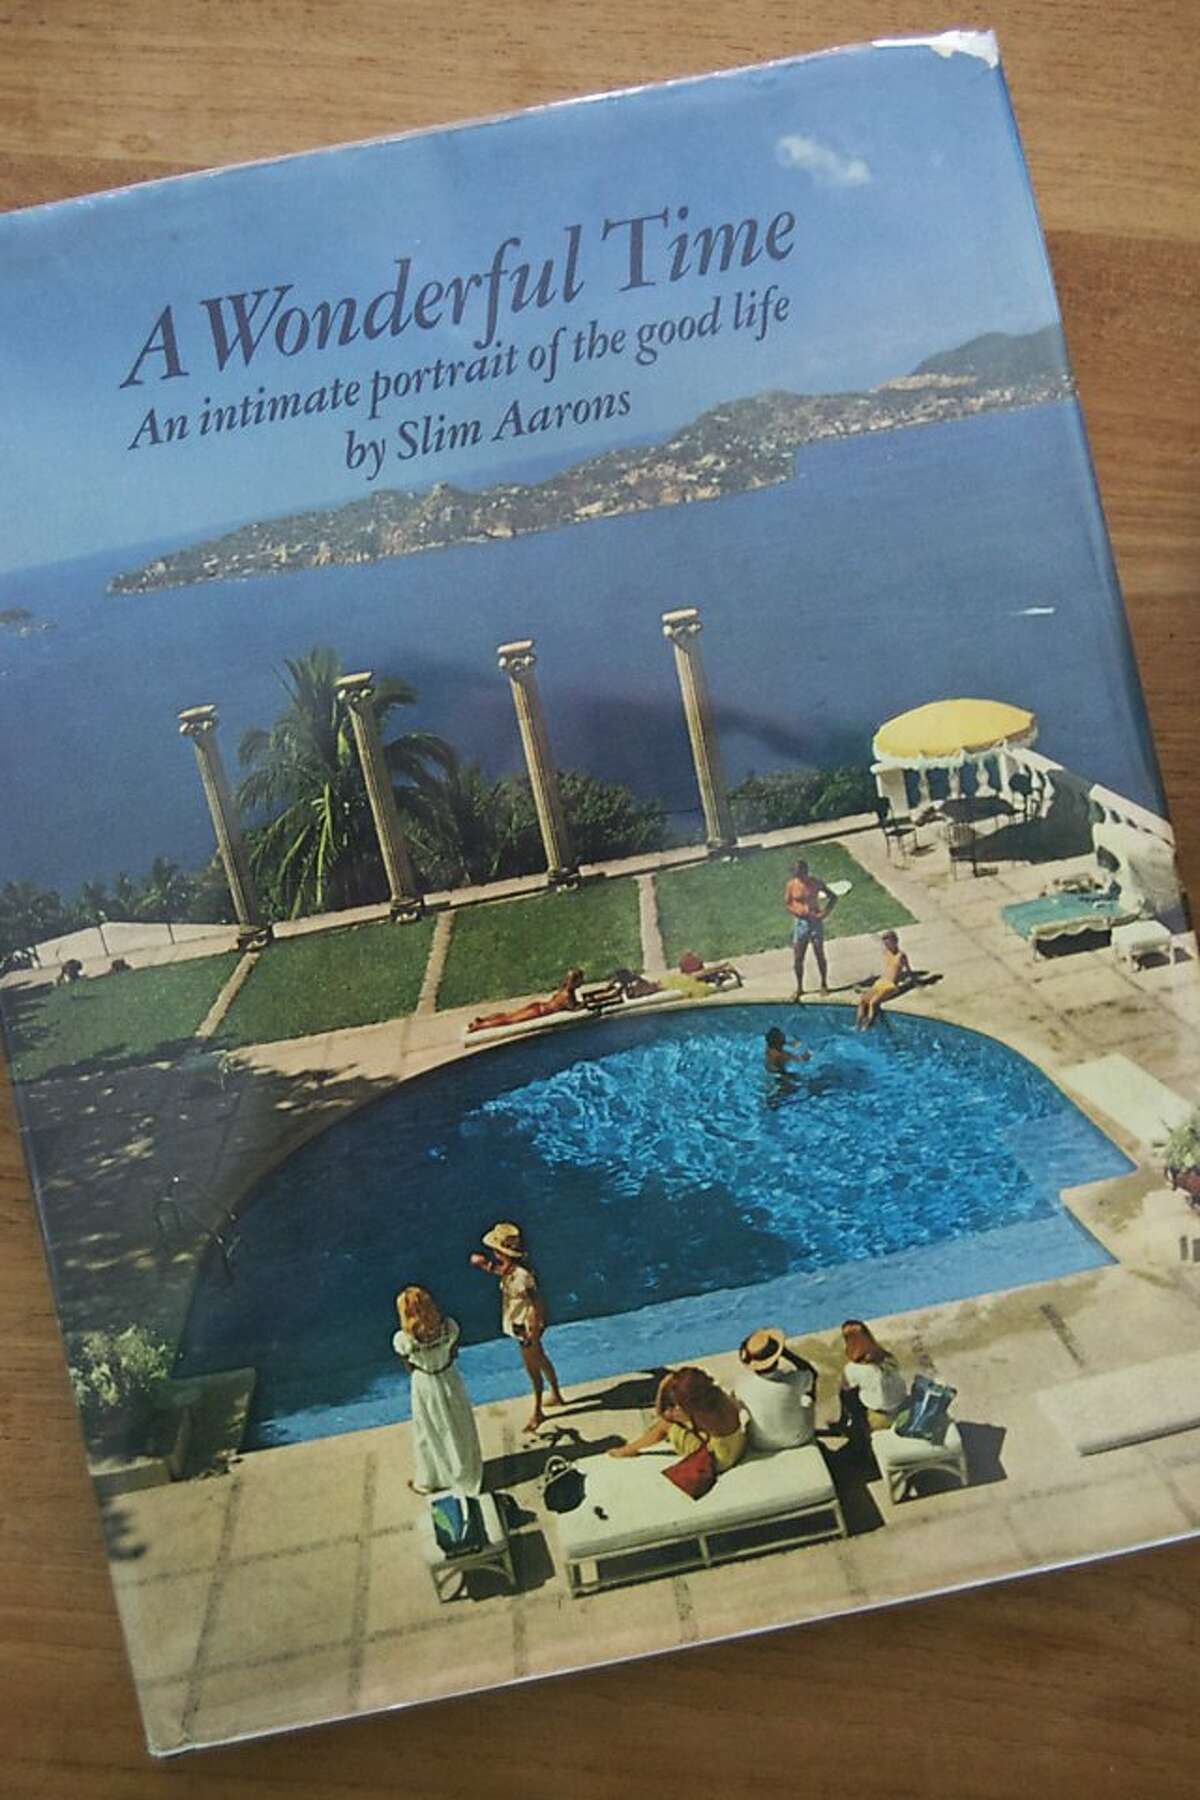 Slim Aarons book: A Wonderful Time: An Intimate Portrait of the Good Life is an amazing coffee table book published in 1974. It features pictures of elegant homes from elite enclaves across the U.S. and Caribbean. It is certainly aspirational; but more than anything, it is a fun glimpse into a bygone era.